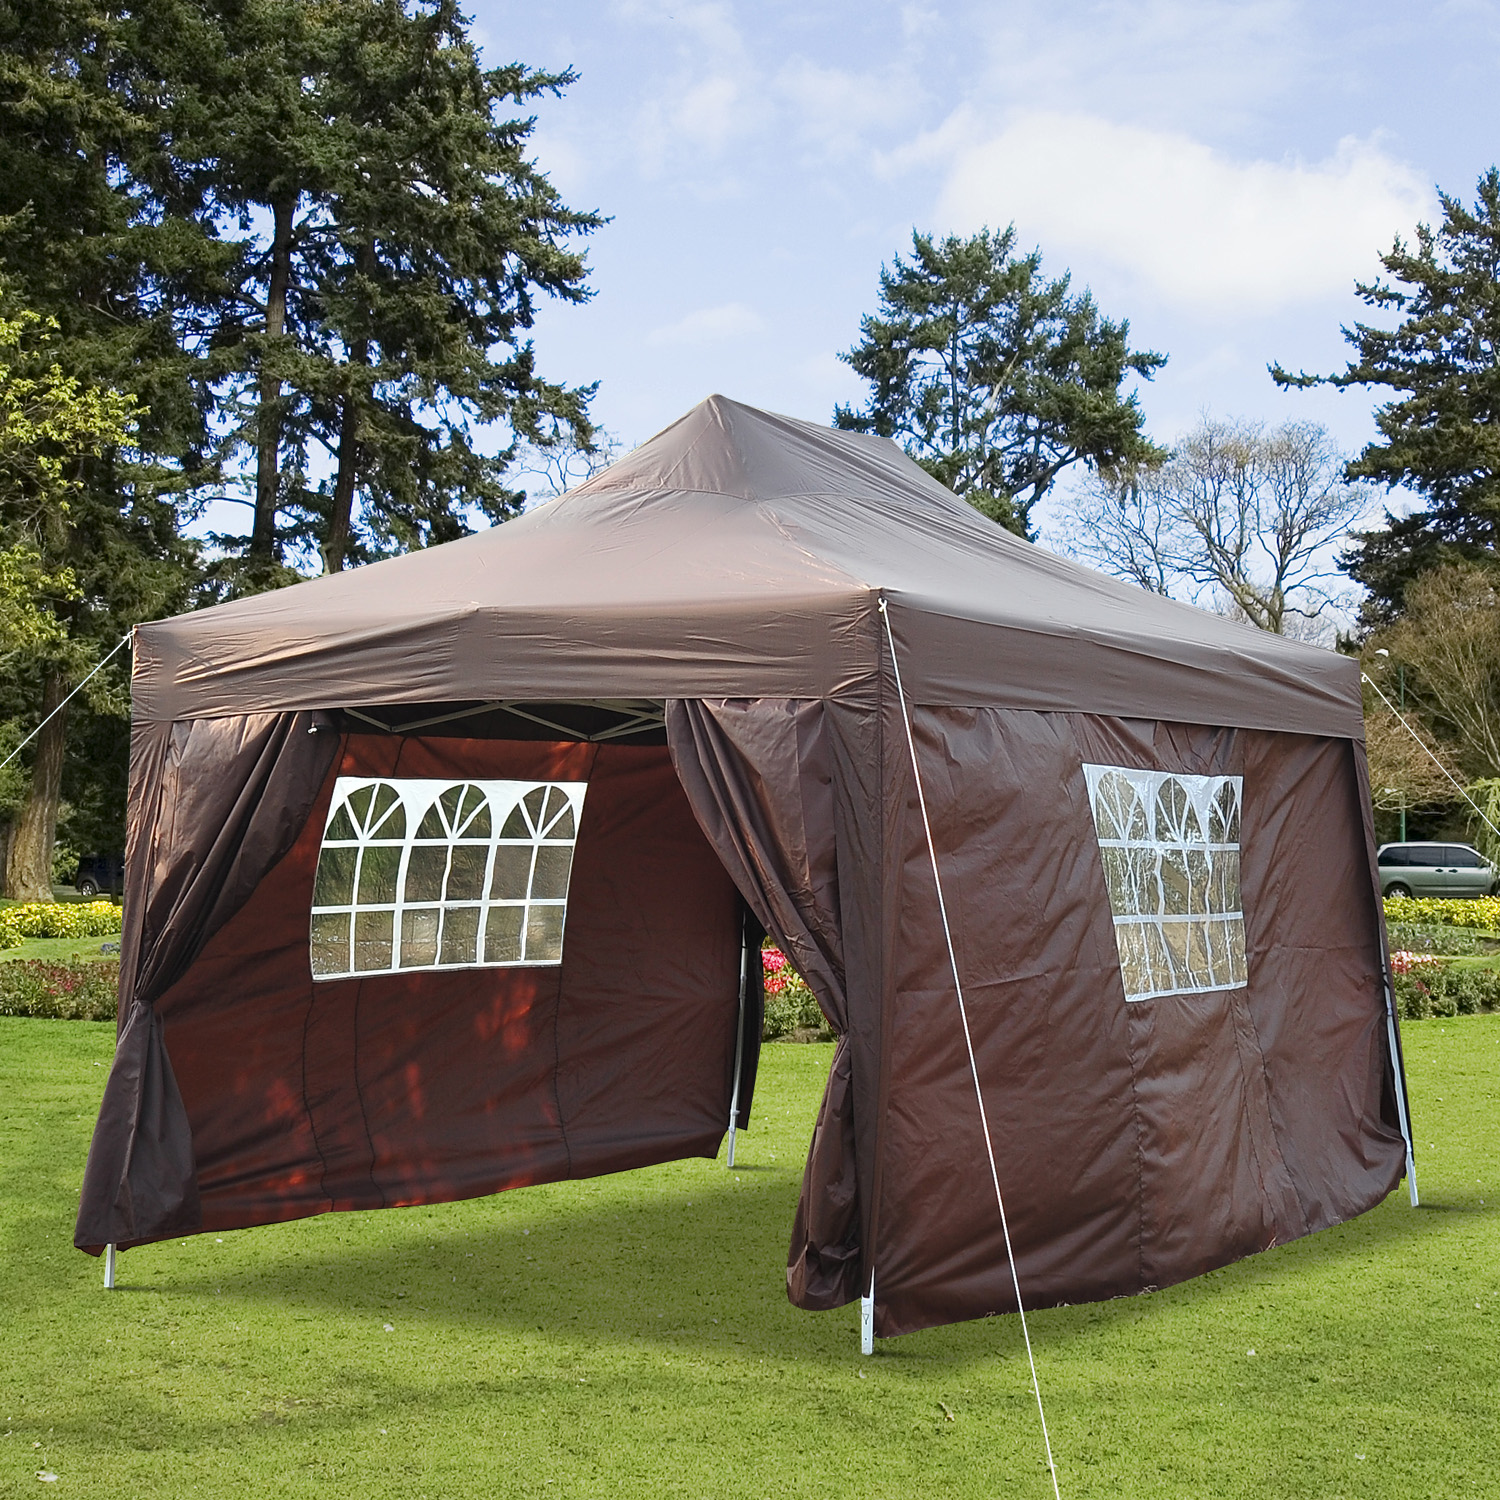 Image of CAD $144.99 Outsunny 10x15ft Pop Up Party Tent Gazebo Wedding Canopy Outdoor w/ Sidewalls and Carrying Bag Coffee / Portable Folding with Carry Case Marquee Pavilion Backyard Canada 25093584268